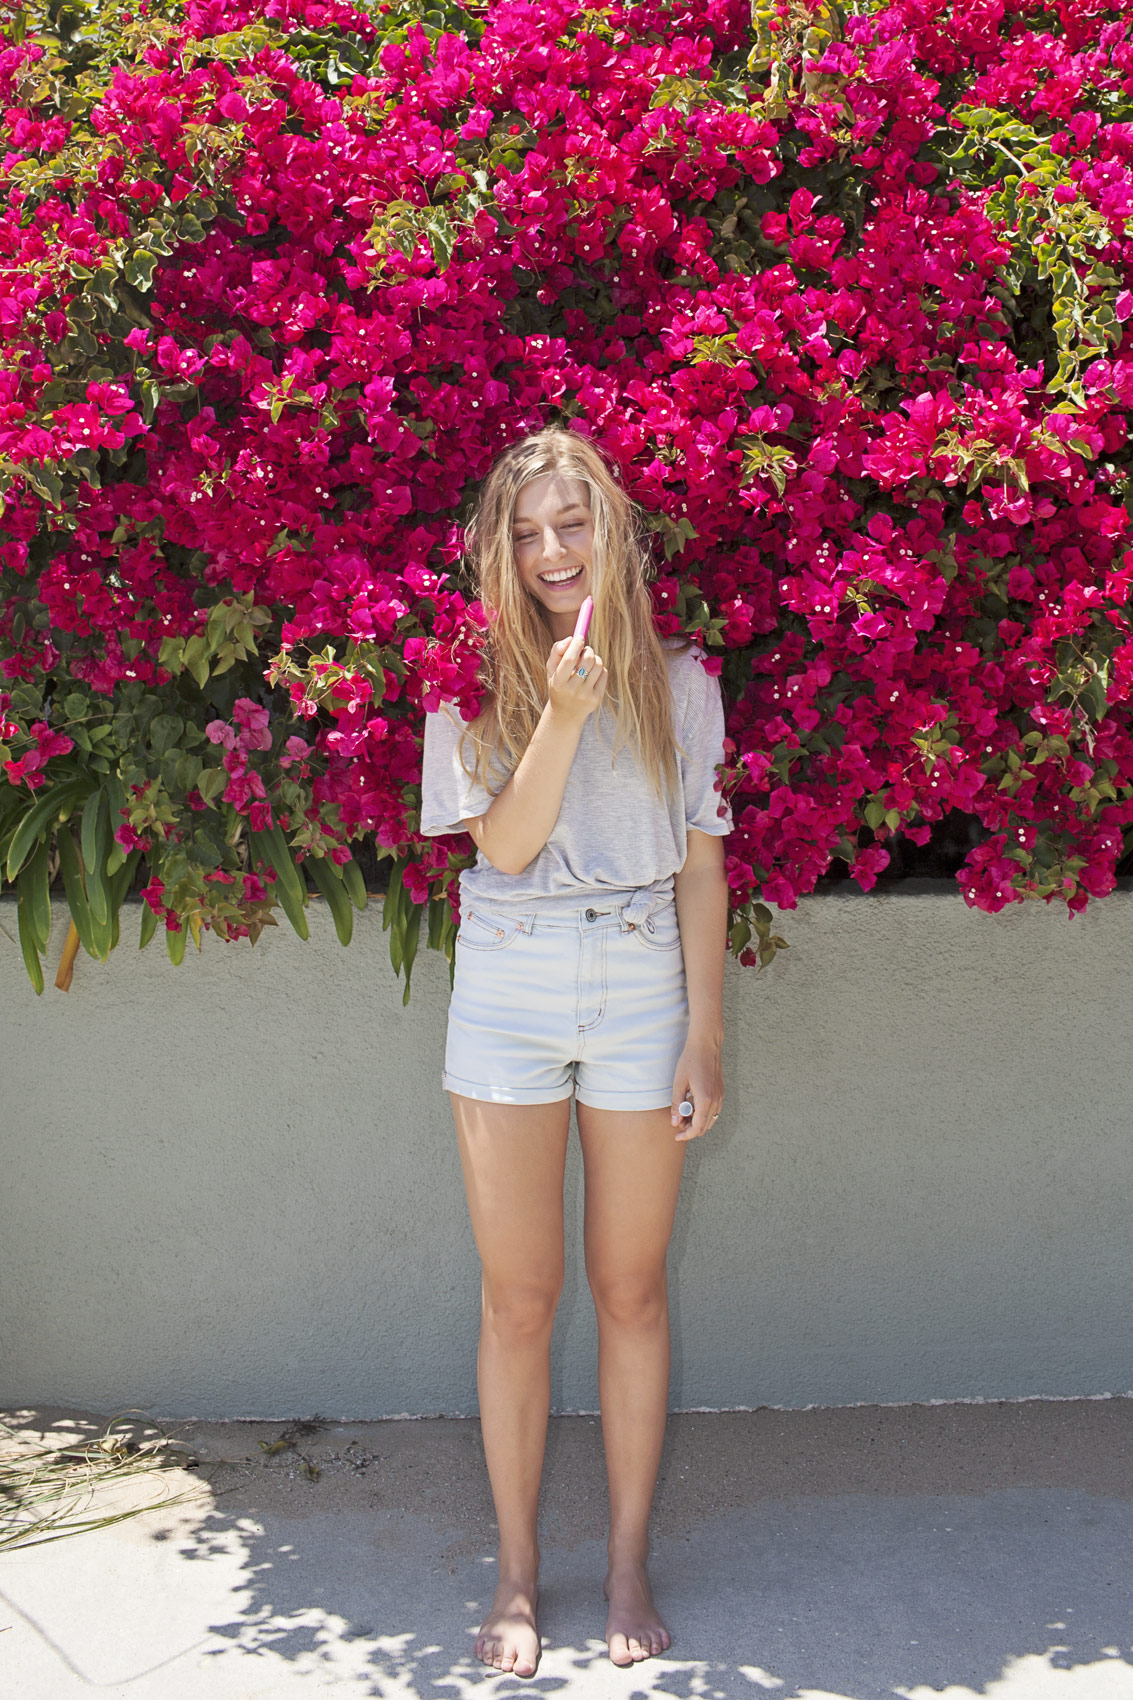 Smiling girl with blonde hair putting lipstick on outside. Kim Genevieve Los Angeles Lifestyle Photographer